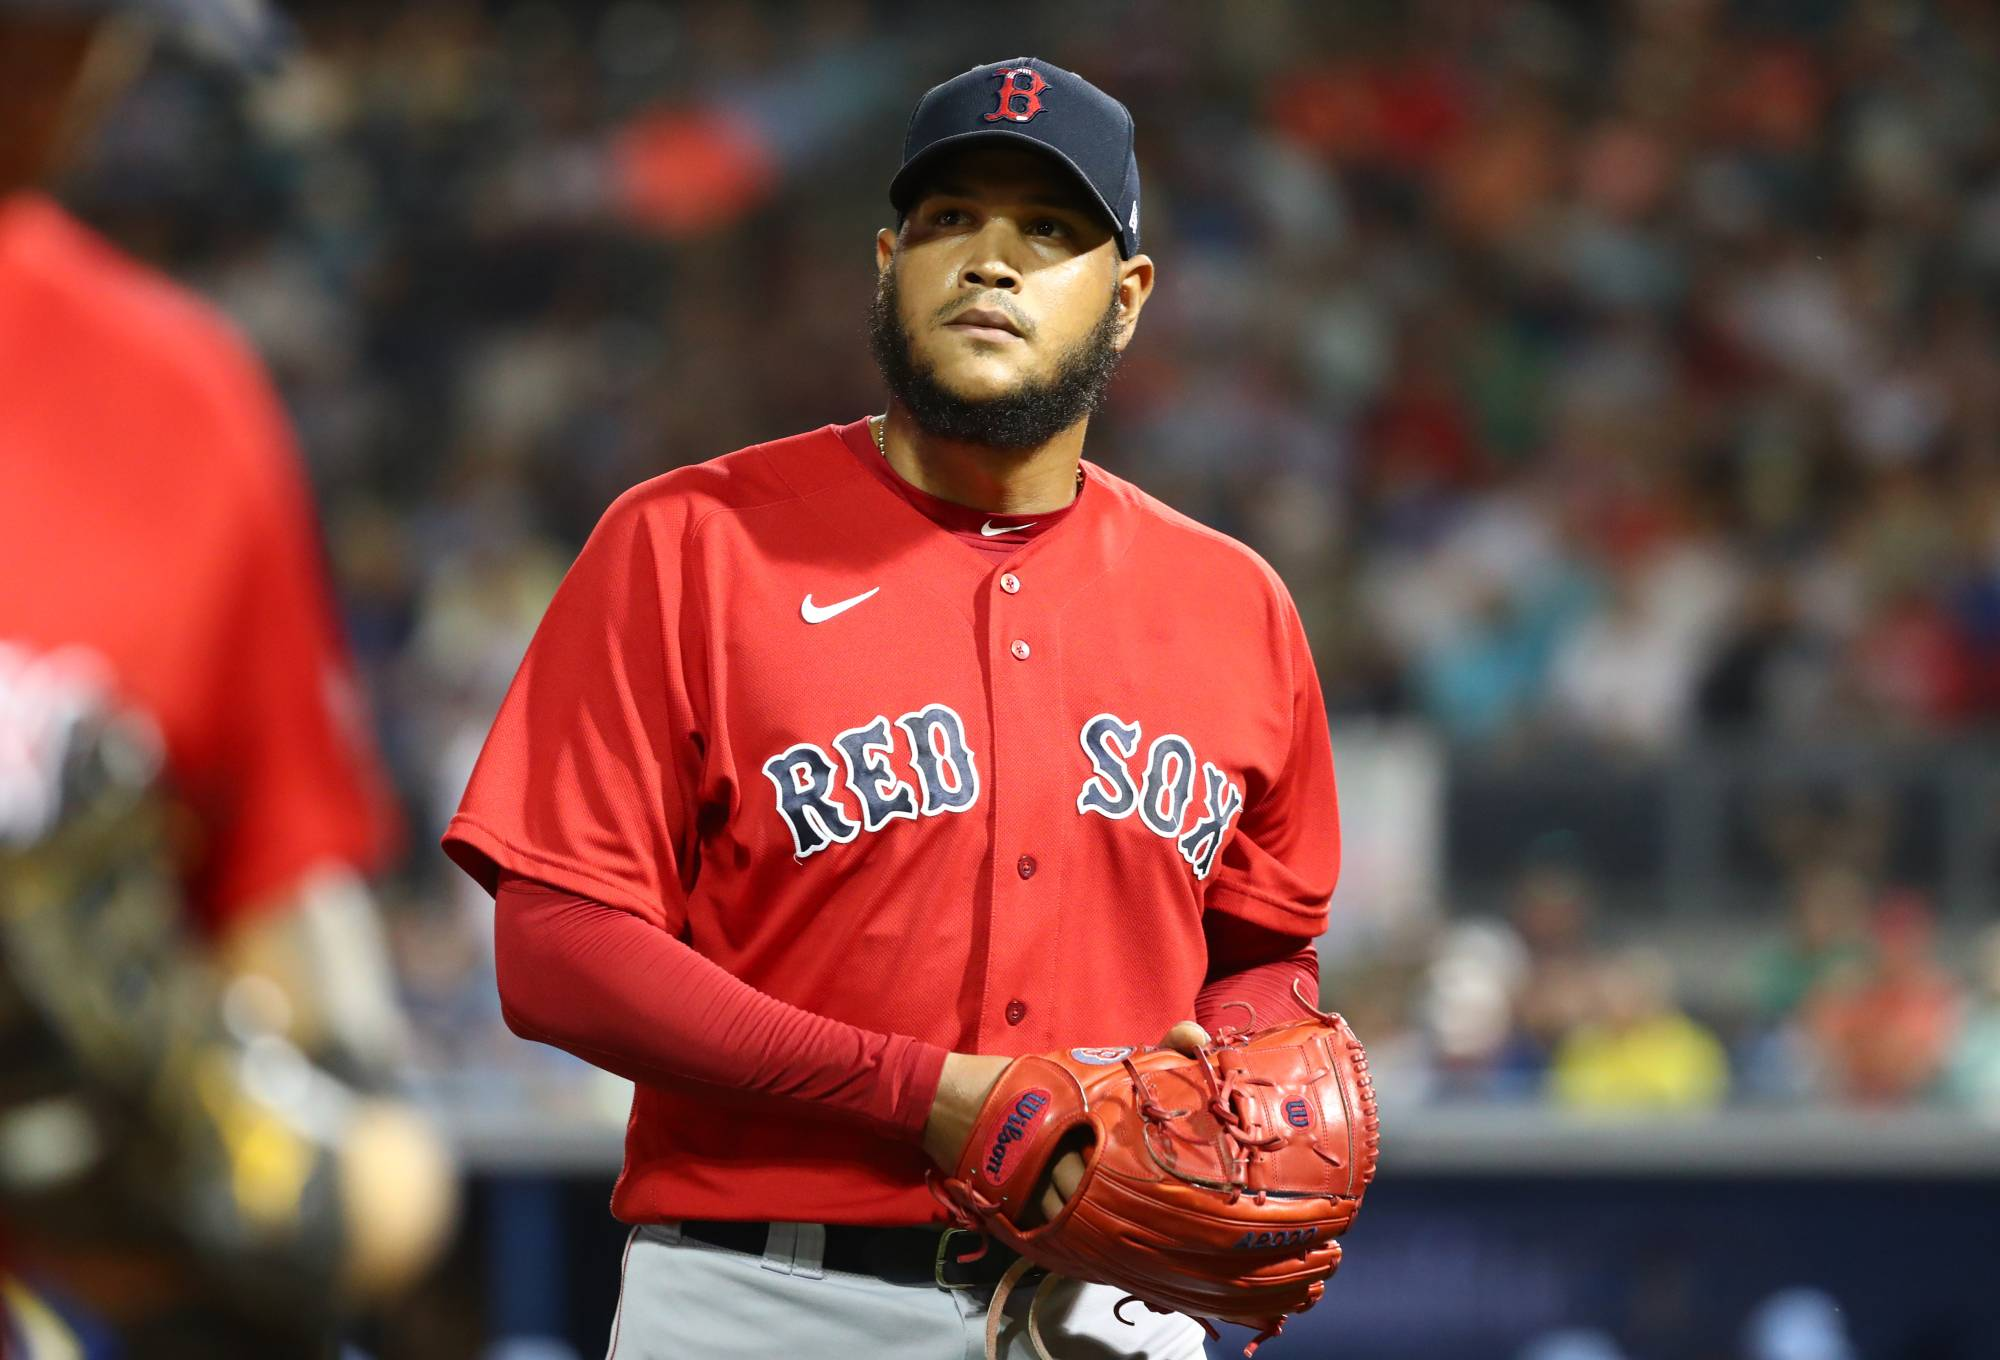 Red Sox pitcher Eduardo Rodriguez is one of a handful of athletes in North America's pro leagues who were diagnosed with heart disease after testing positive for COVID-19. | USA TODAY / VIA REUTERS